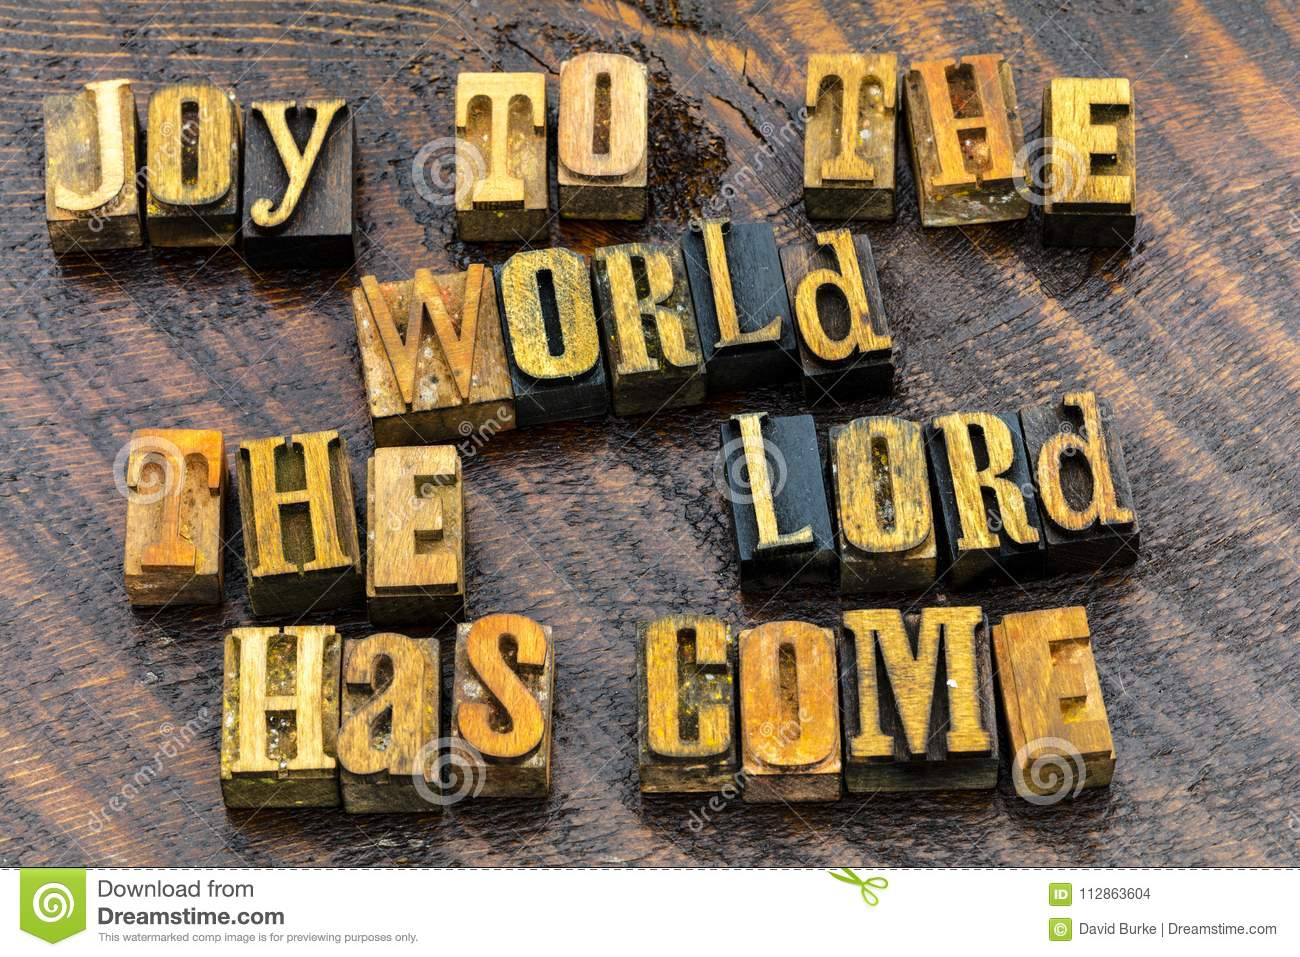 Joy To The World Greeting Religious Stock Photo Image Of Wood